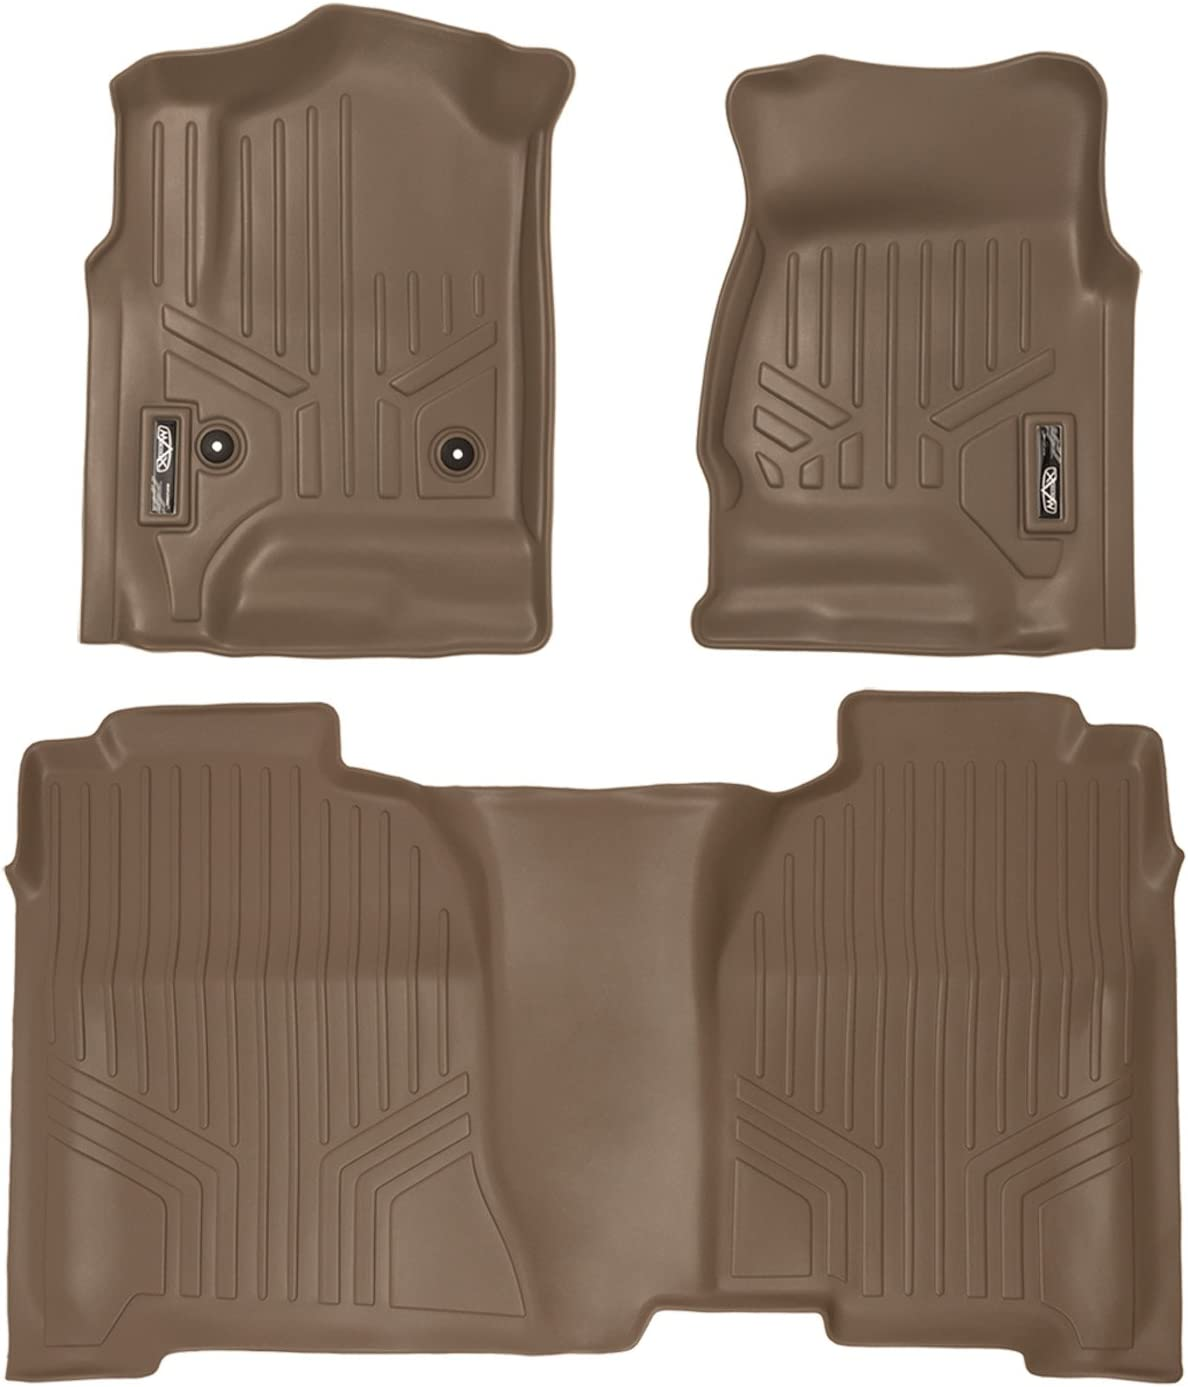 MAXLINER Floor Mats 2 Row Liner Set New Shipping Free Shipping for Ranking TOP5 2014-2018 Tan Cab Crew S